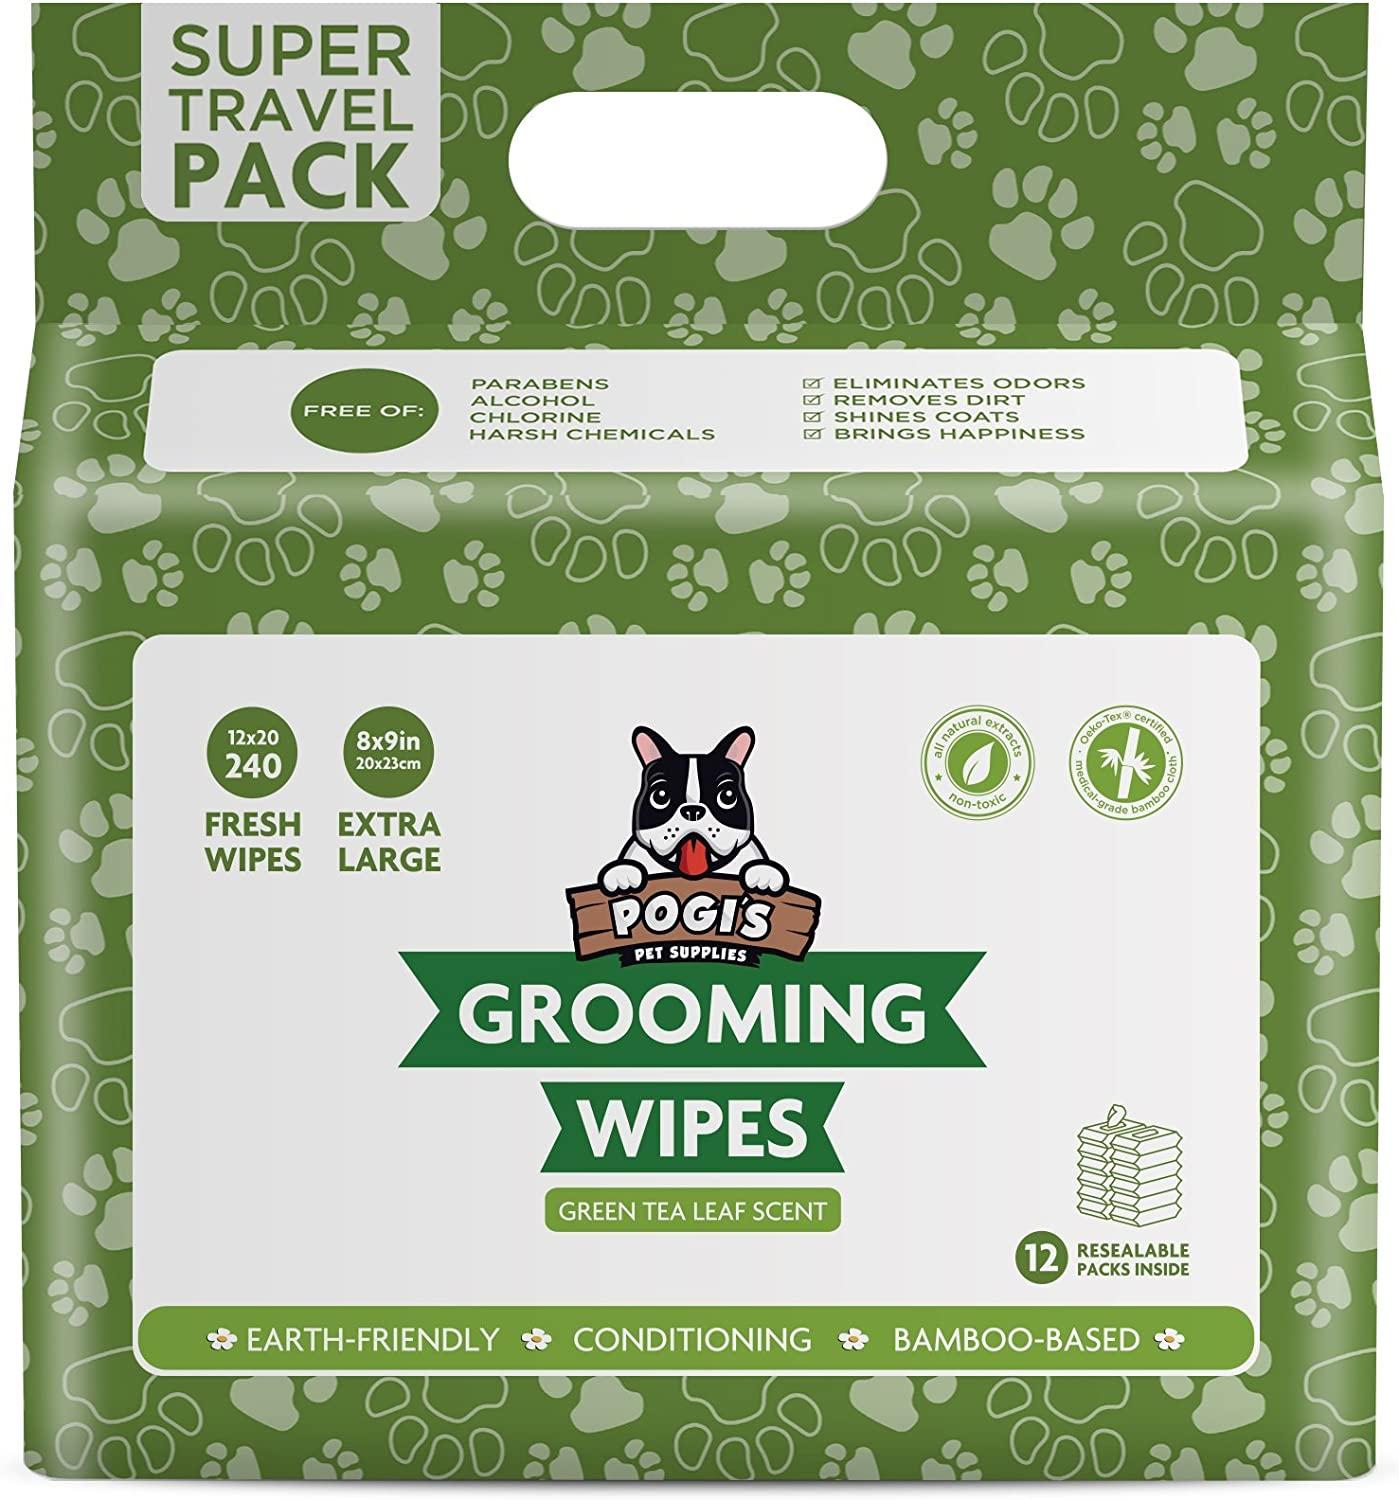 Green Tea Leaf Scented 240-Count Travel Pack Biodegradable Pogis Grooming Wipes Deodorising Wipes for Dogs /& Cats